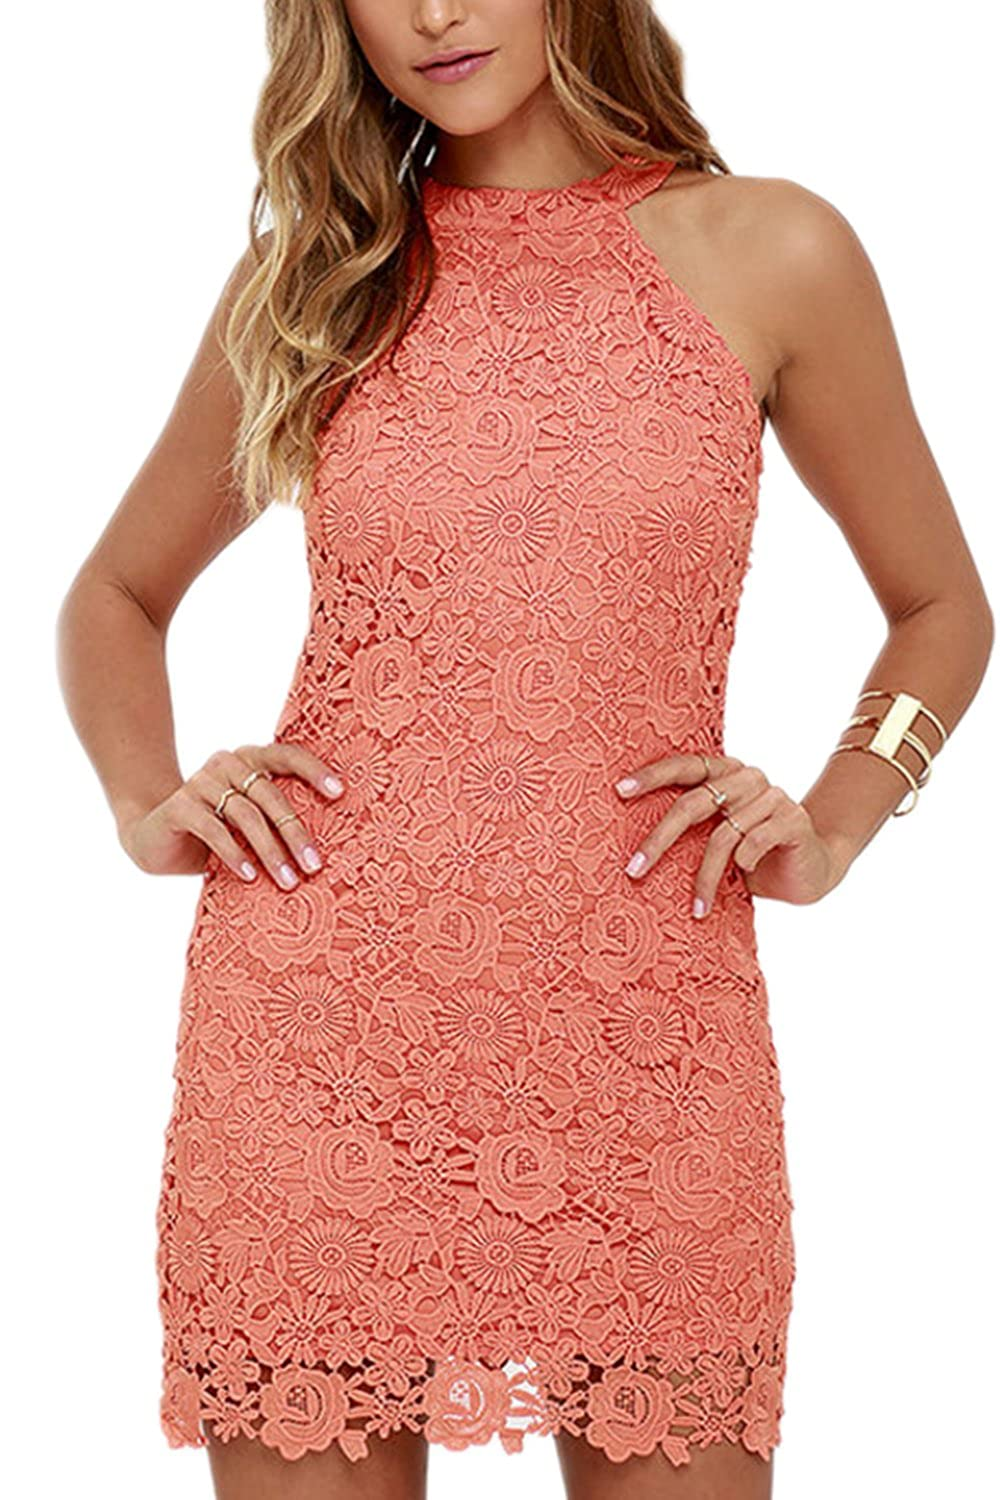 yulinge Womens Summer Elegant Halter Lace Mini Dress Slim Party Dresses CAWM051